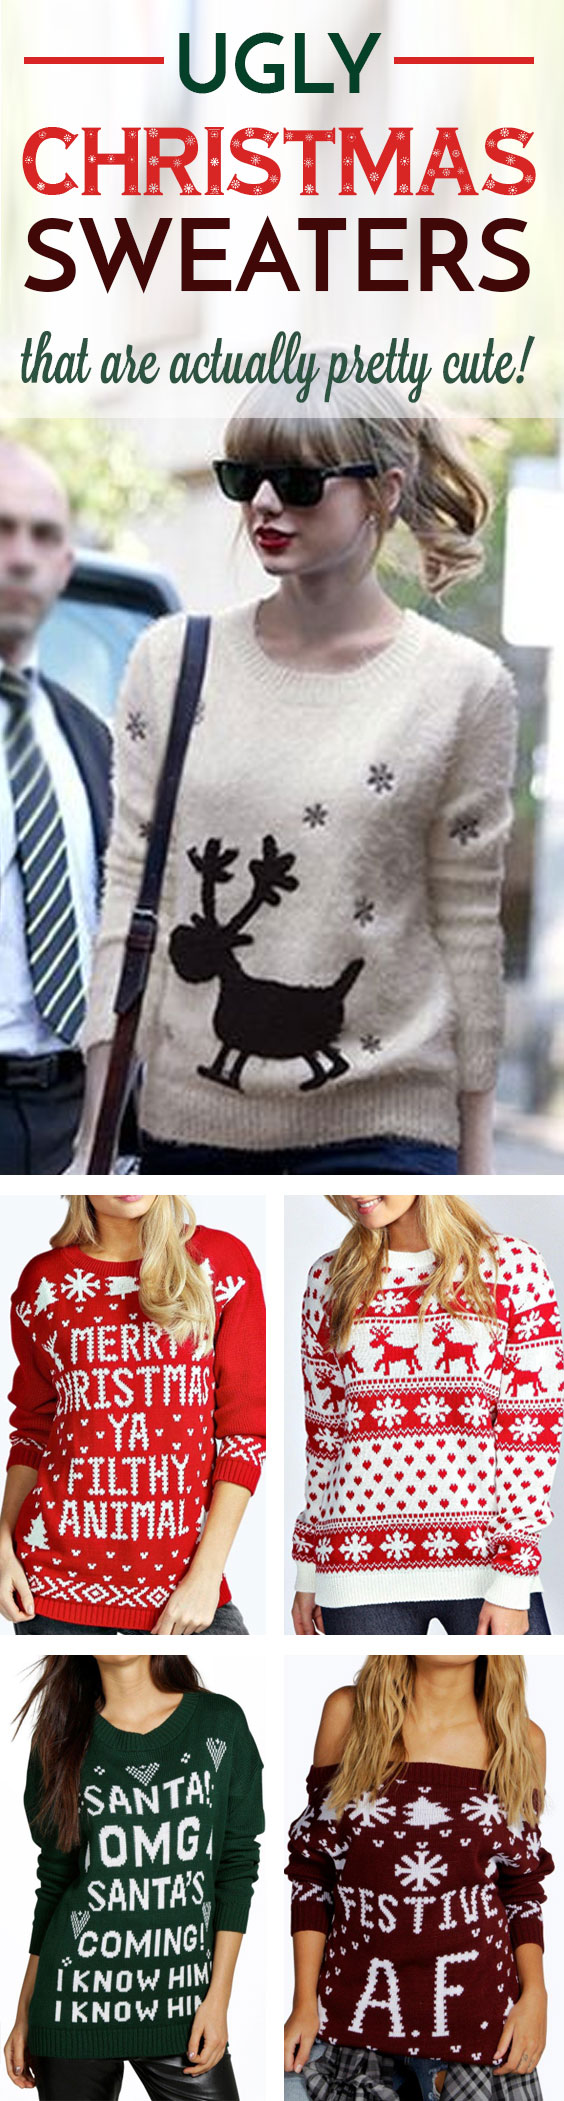 These cute ugly Christmas sweaters are actually pretty stylish!